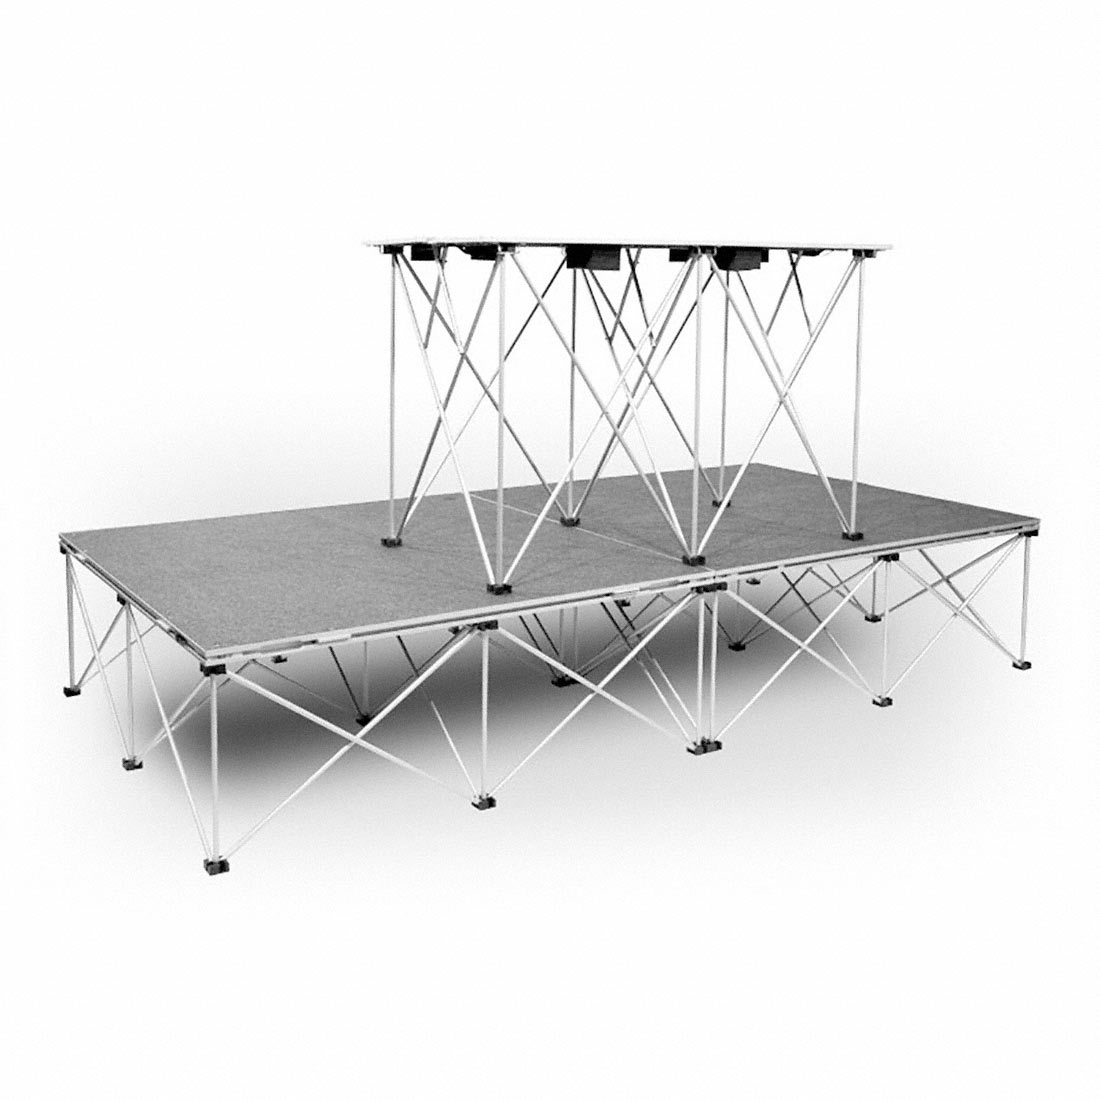 Intellistage 4x8 Dj Platform Package With 30 High Folding Table